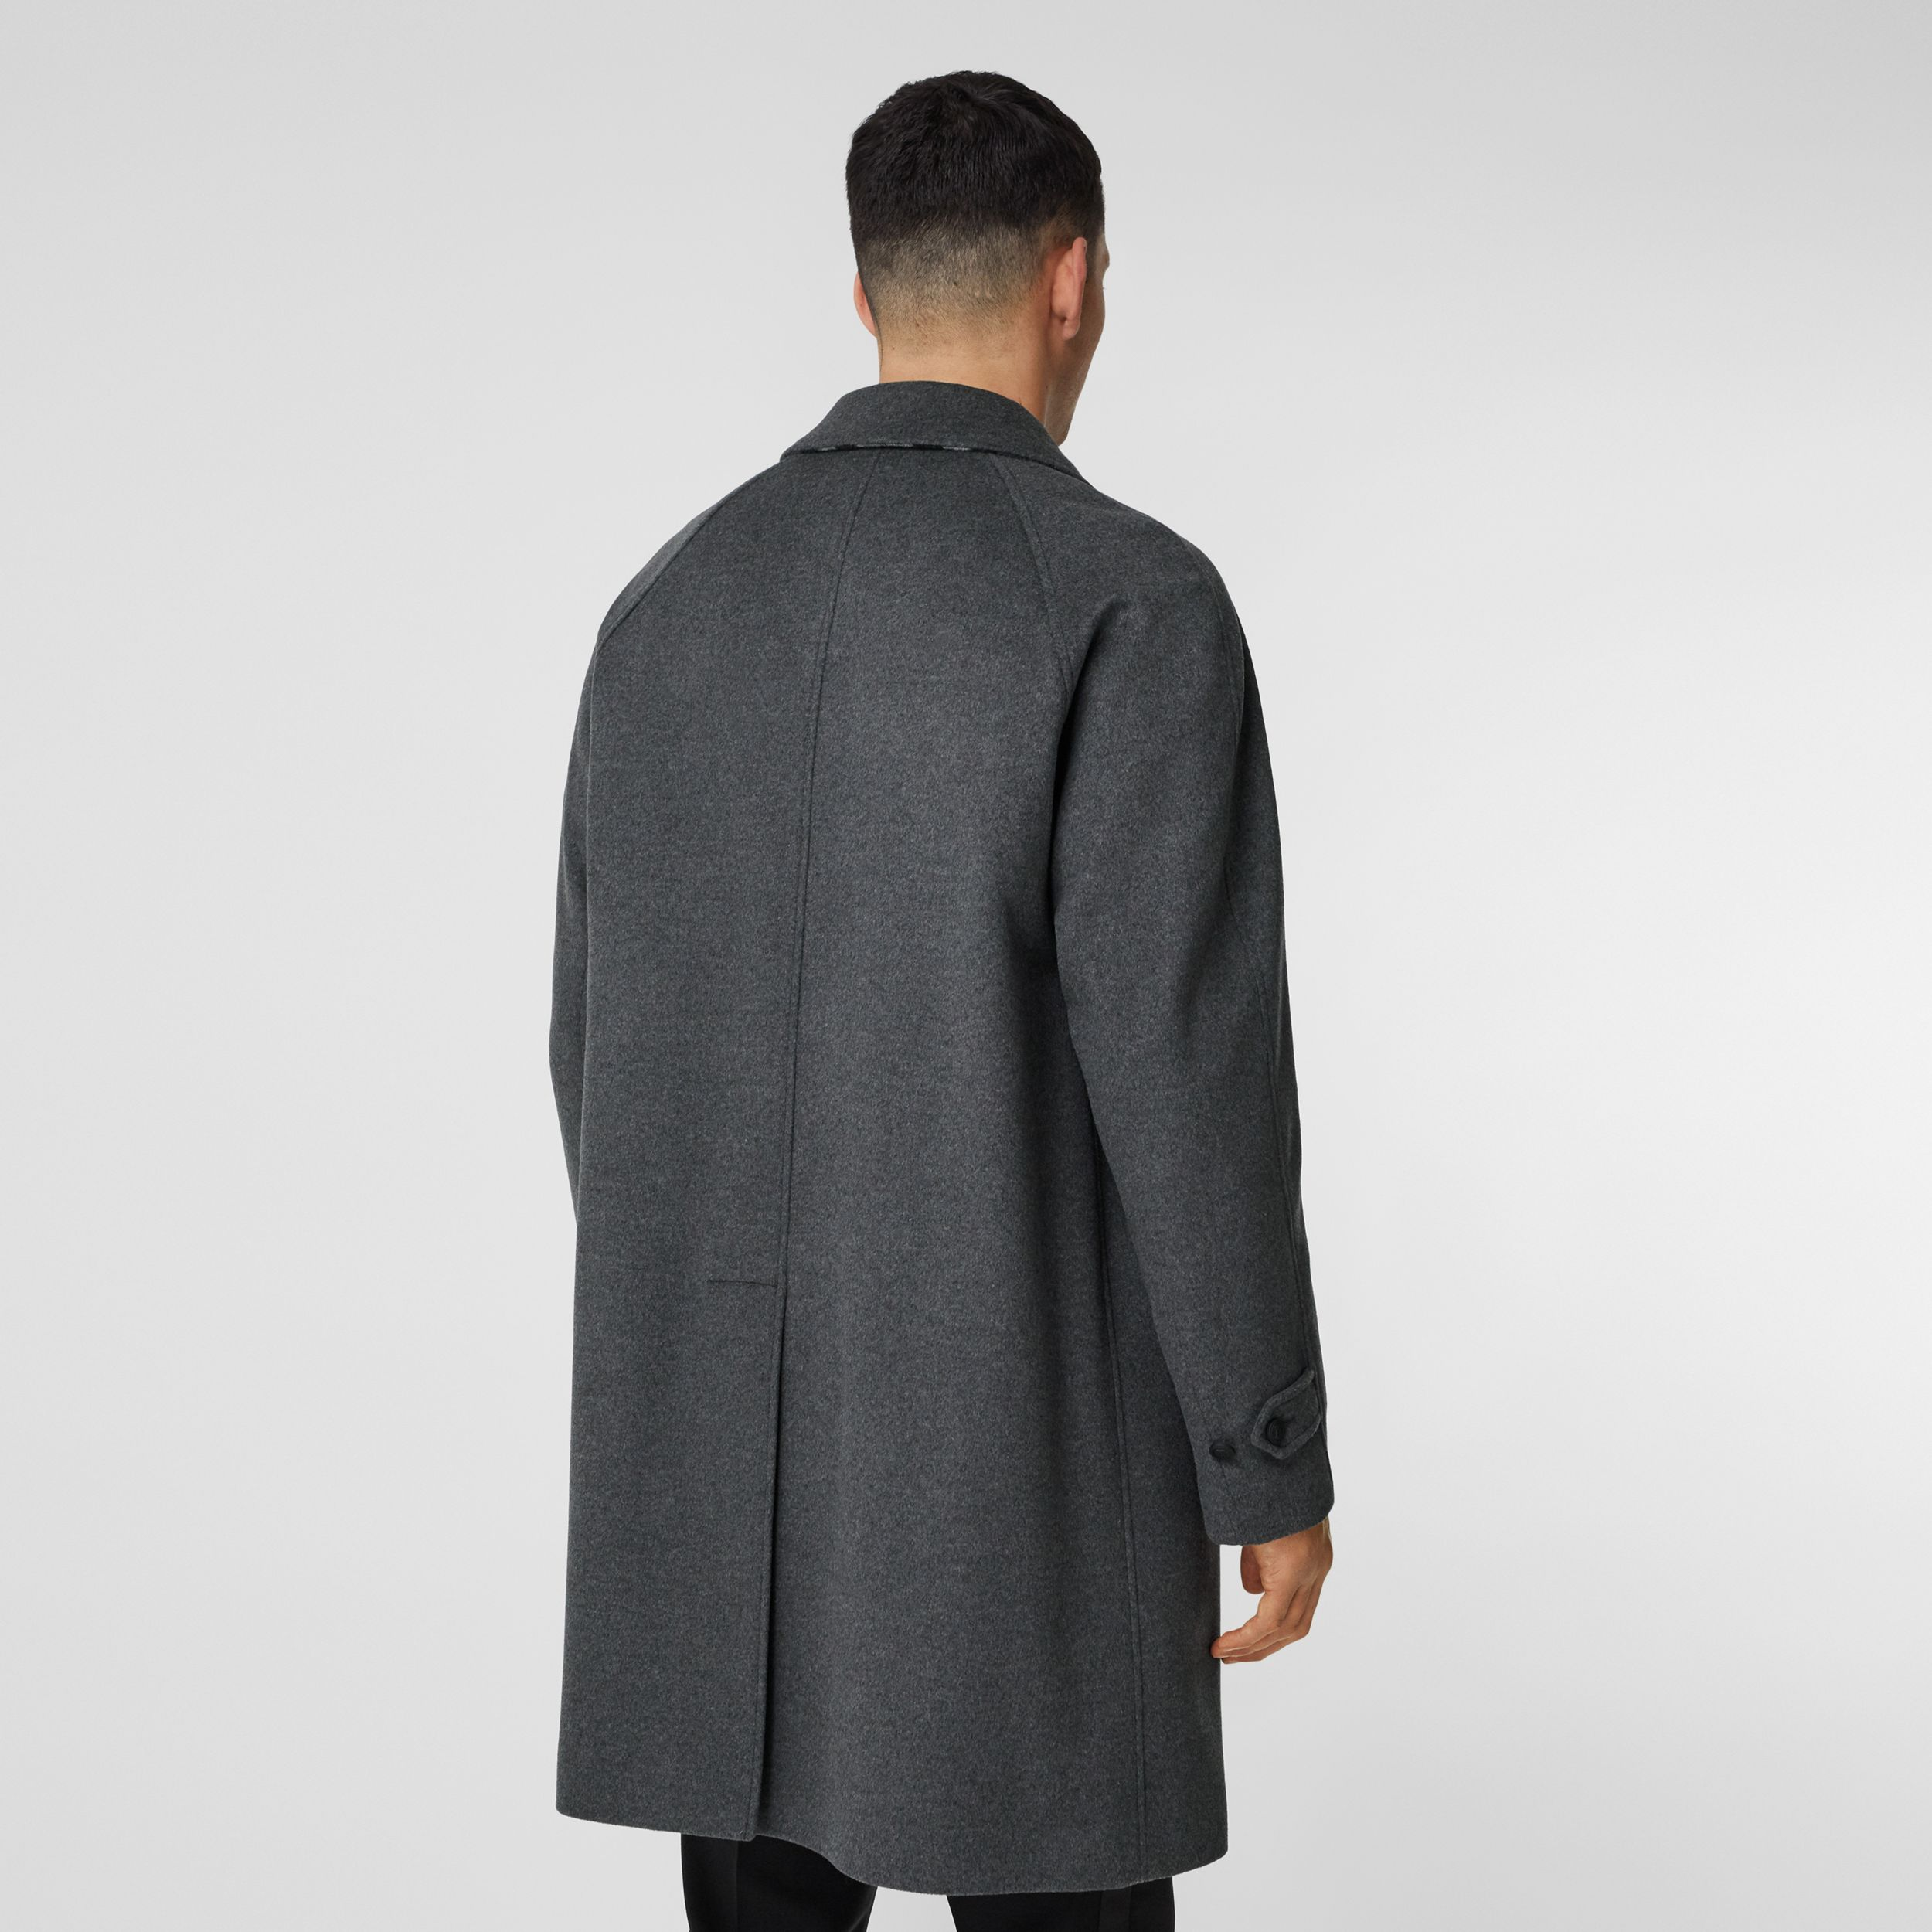 Button Detail Wool Cashmere Car Coat in Charcoal Melange - Men | Burberry - 3